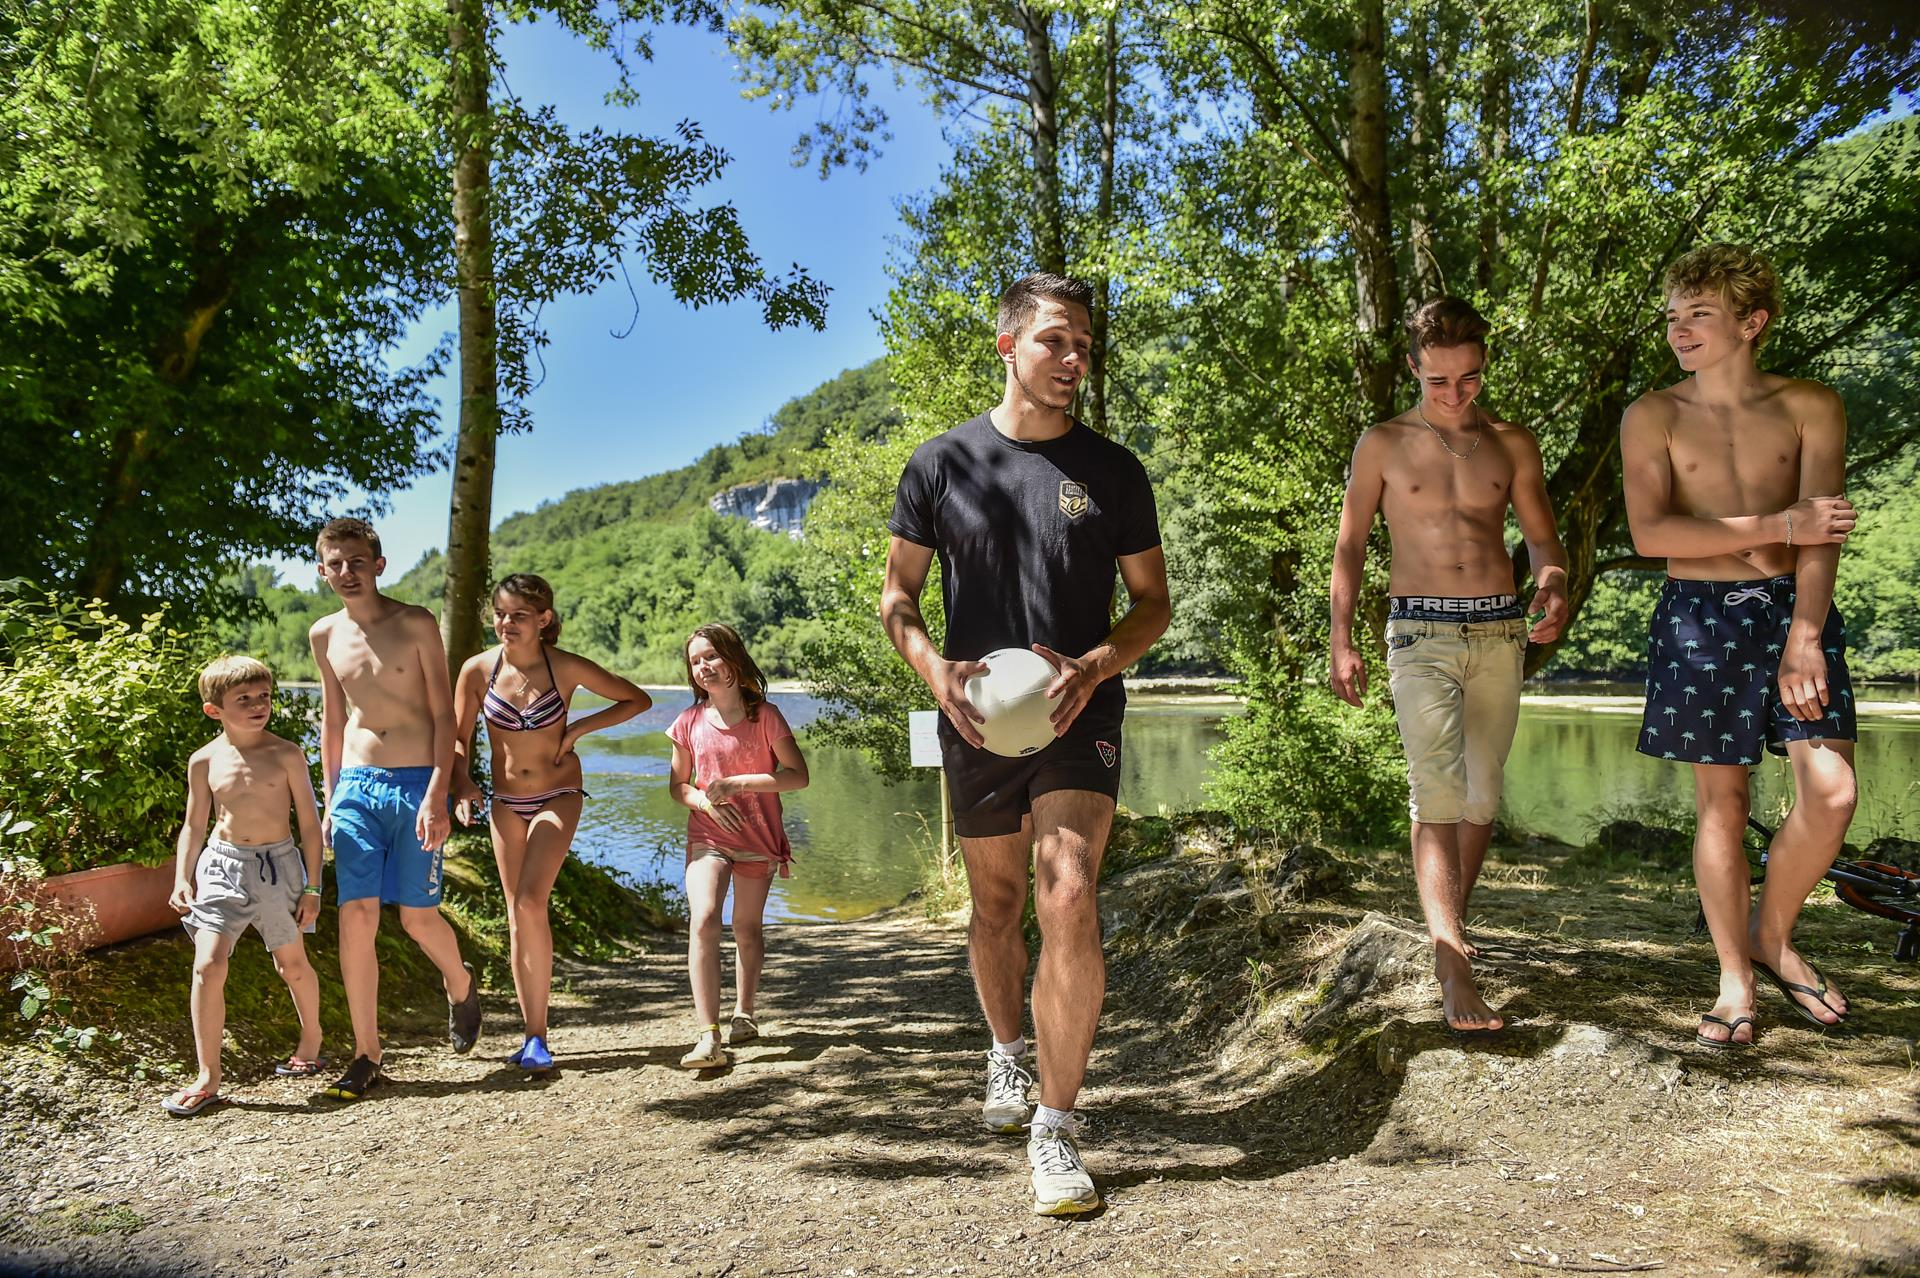 Entertainment organised Camping LA RIVIERE - LACAVE